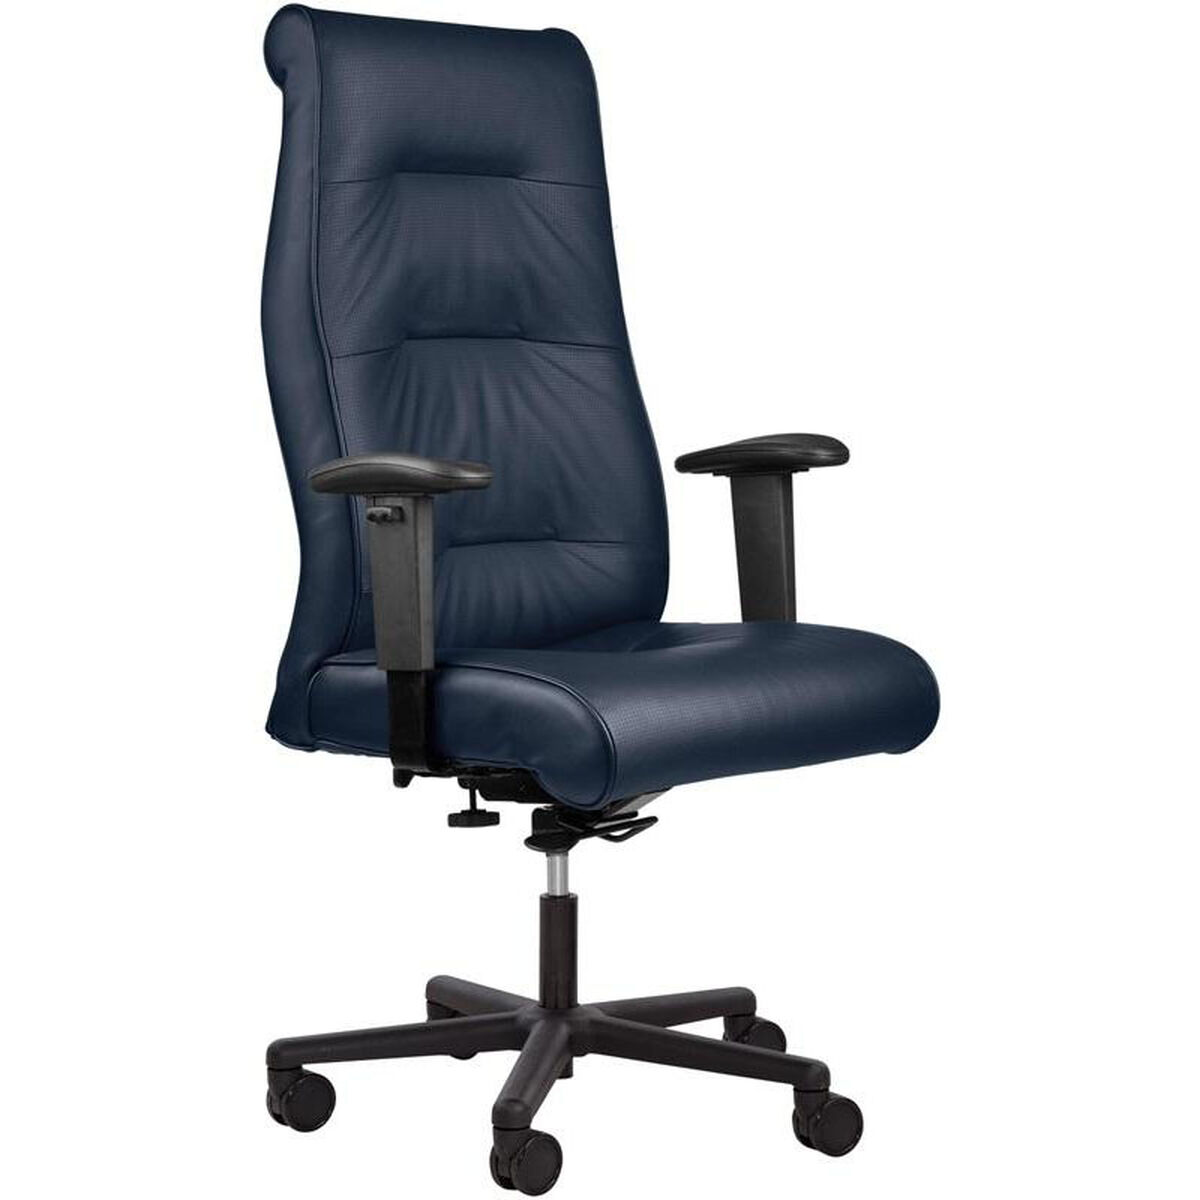 Our Felix 350 Lbs High Back Heavy Duty 24 7 Intensive Use Office Chair Is